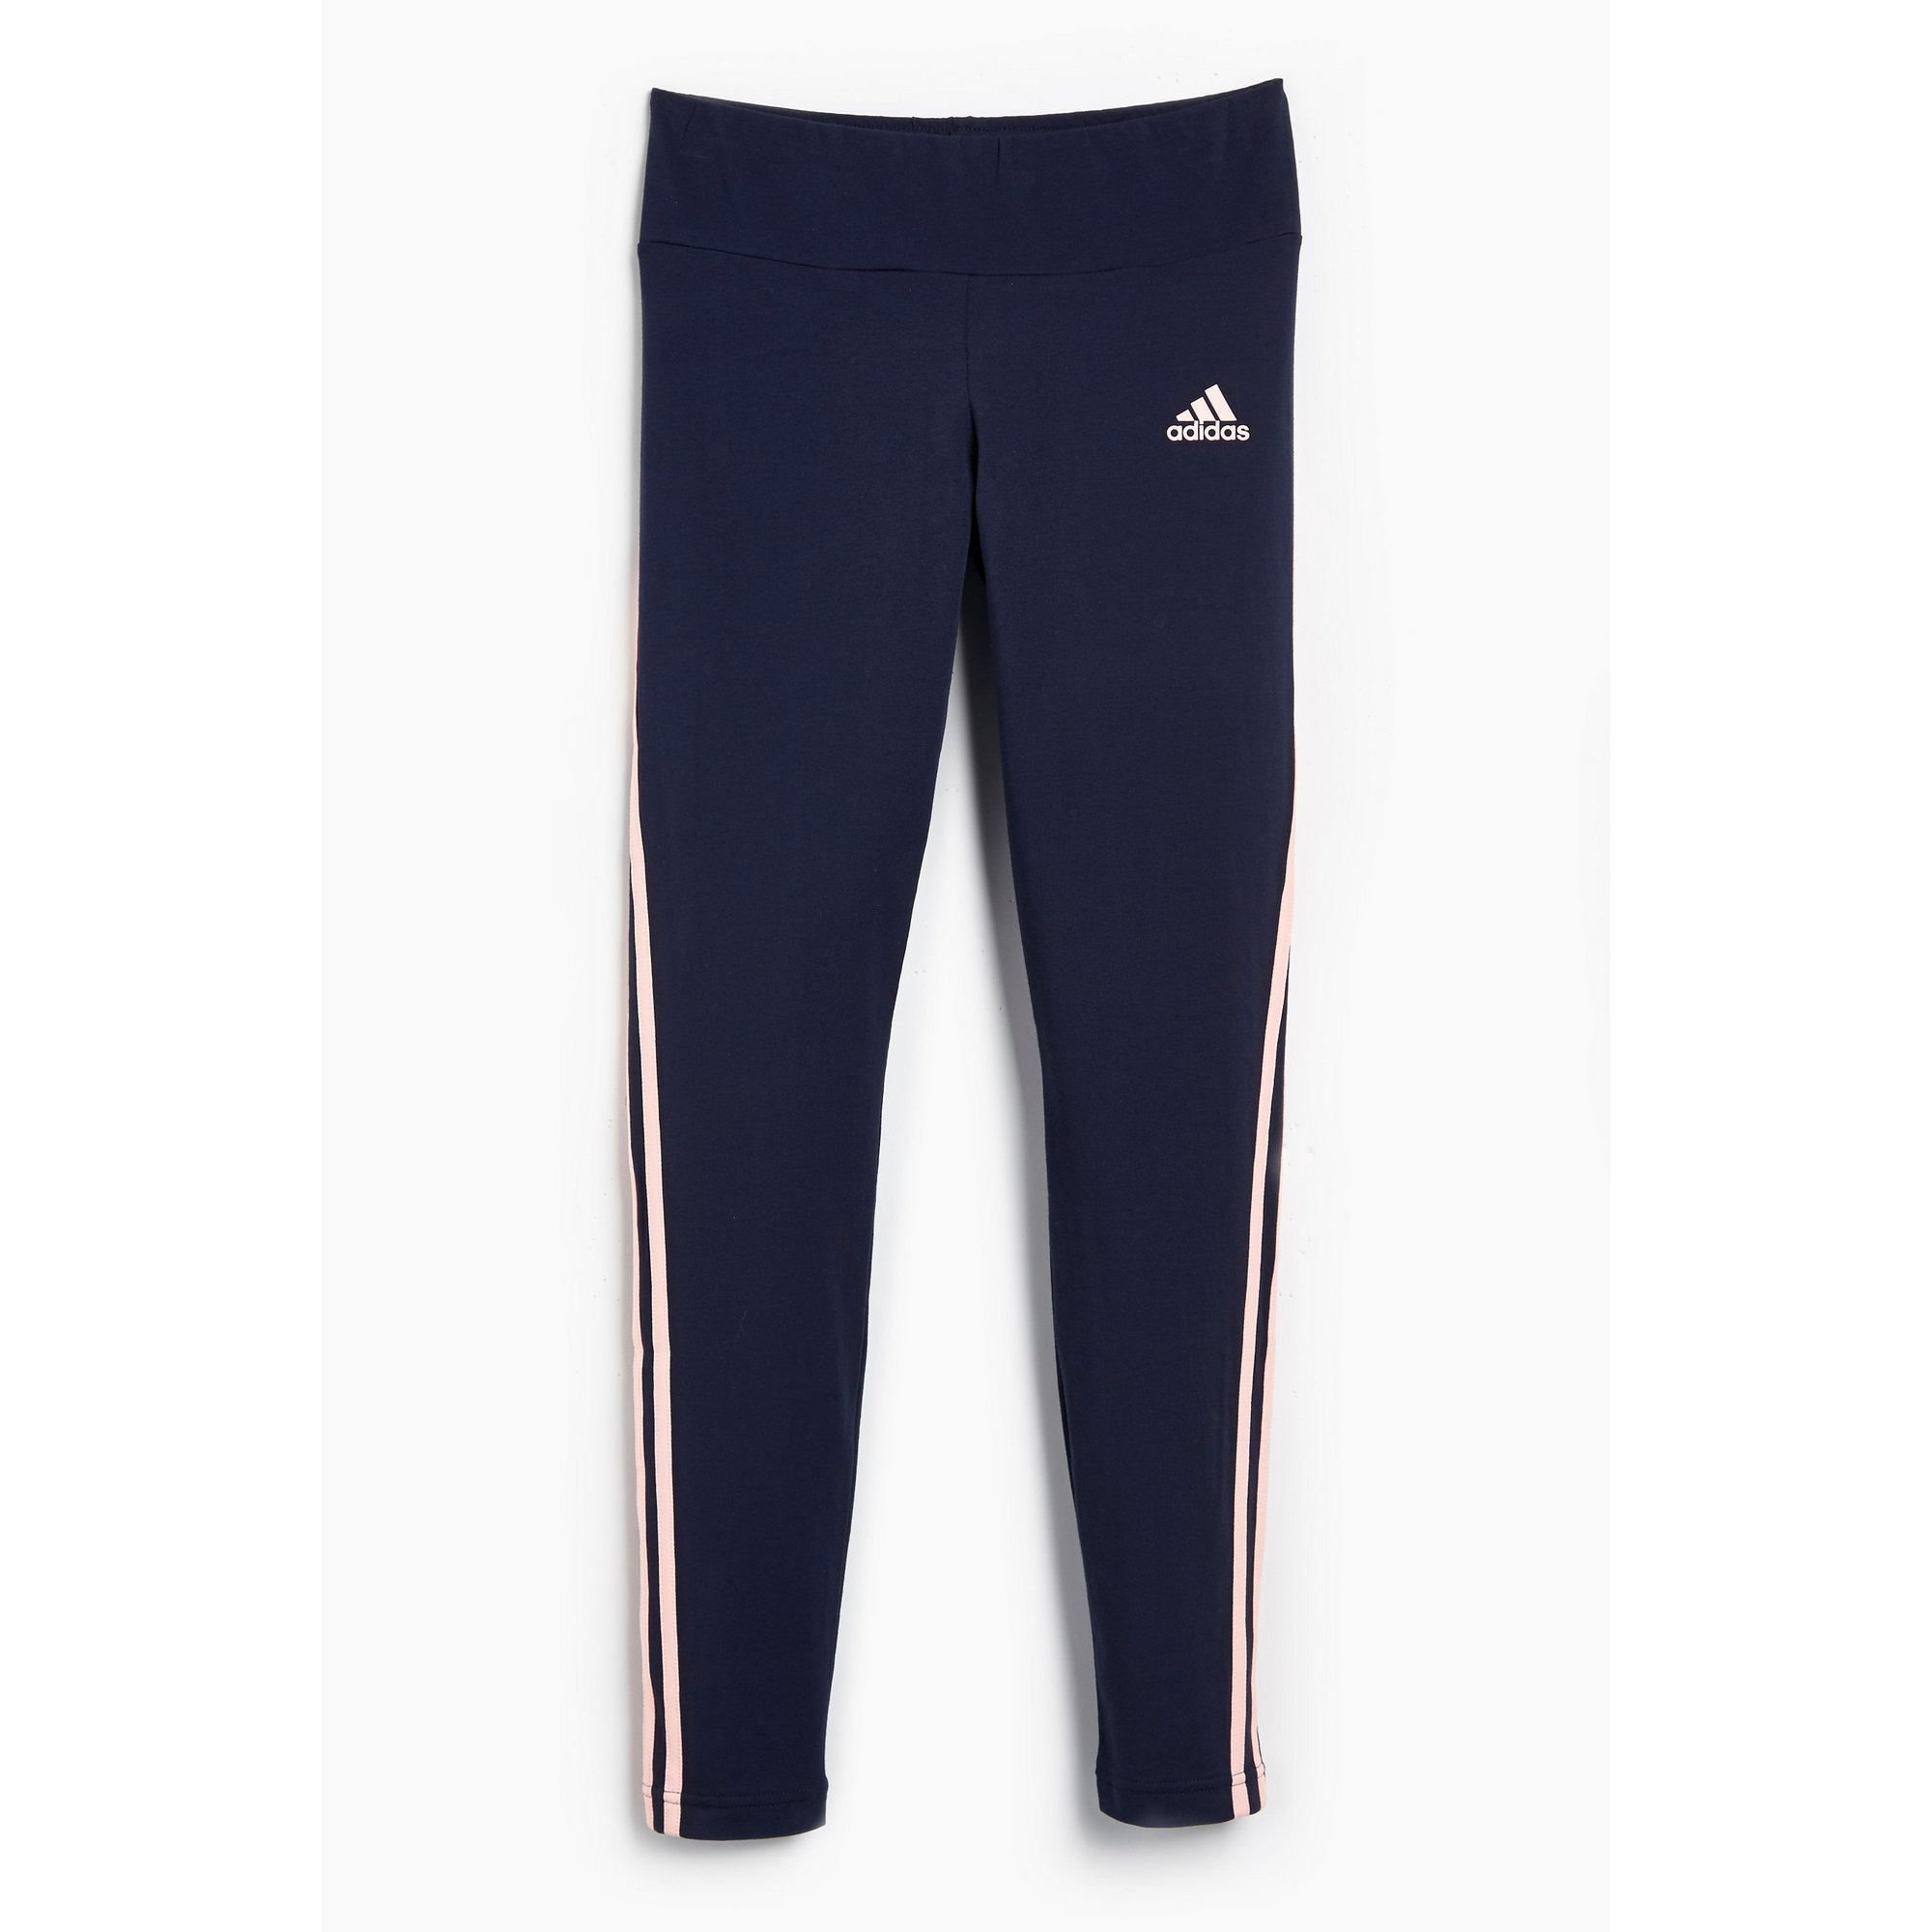 Image of Girls adidas Blue 3 Stripe Leggings